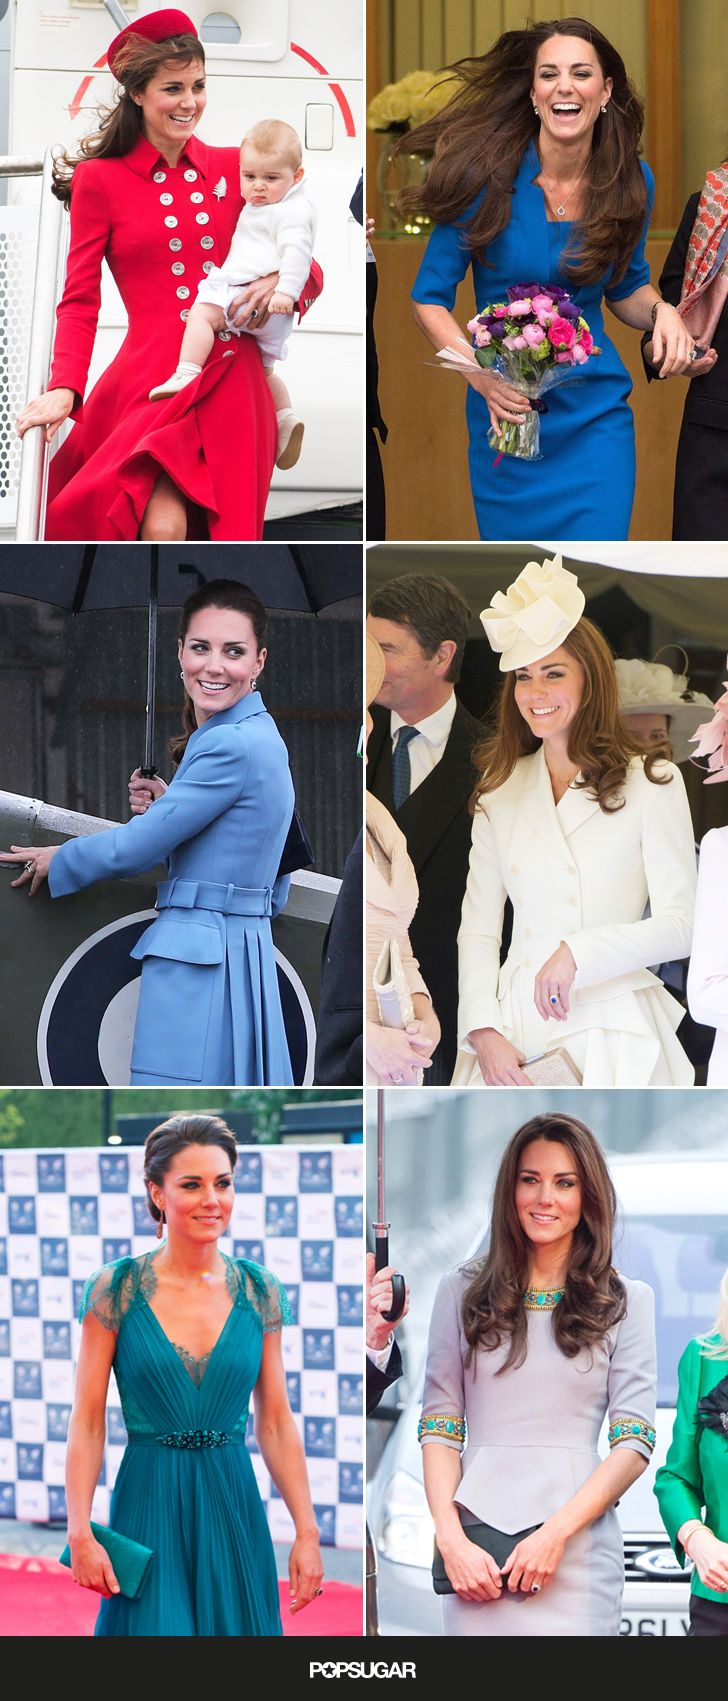 All of the Duchess of Cambridge's best moments.  She is so lovely and gracious.  I see beauty IN her actions in almost every single pic!  SHE IS OUTSTANDING!